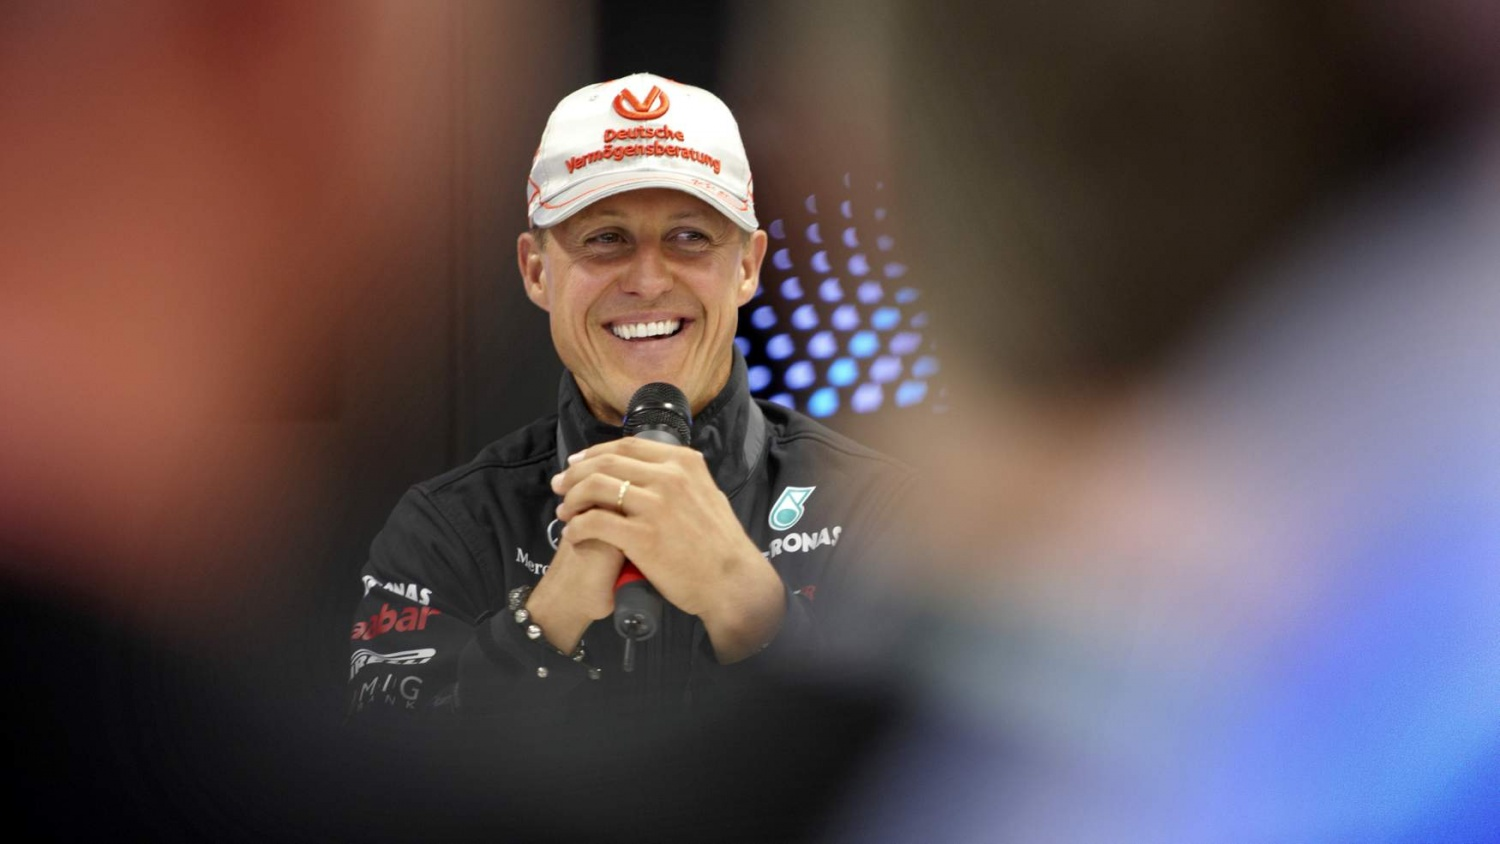 One of the last known interviews with Michael Schumacher